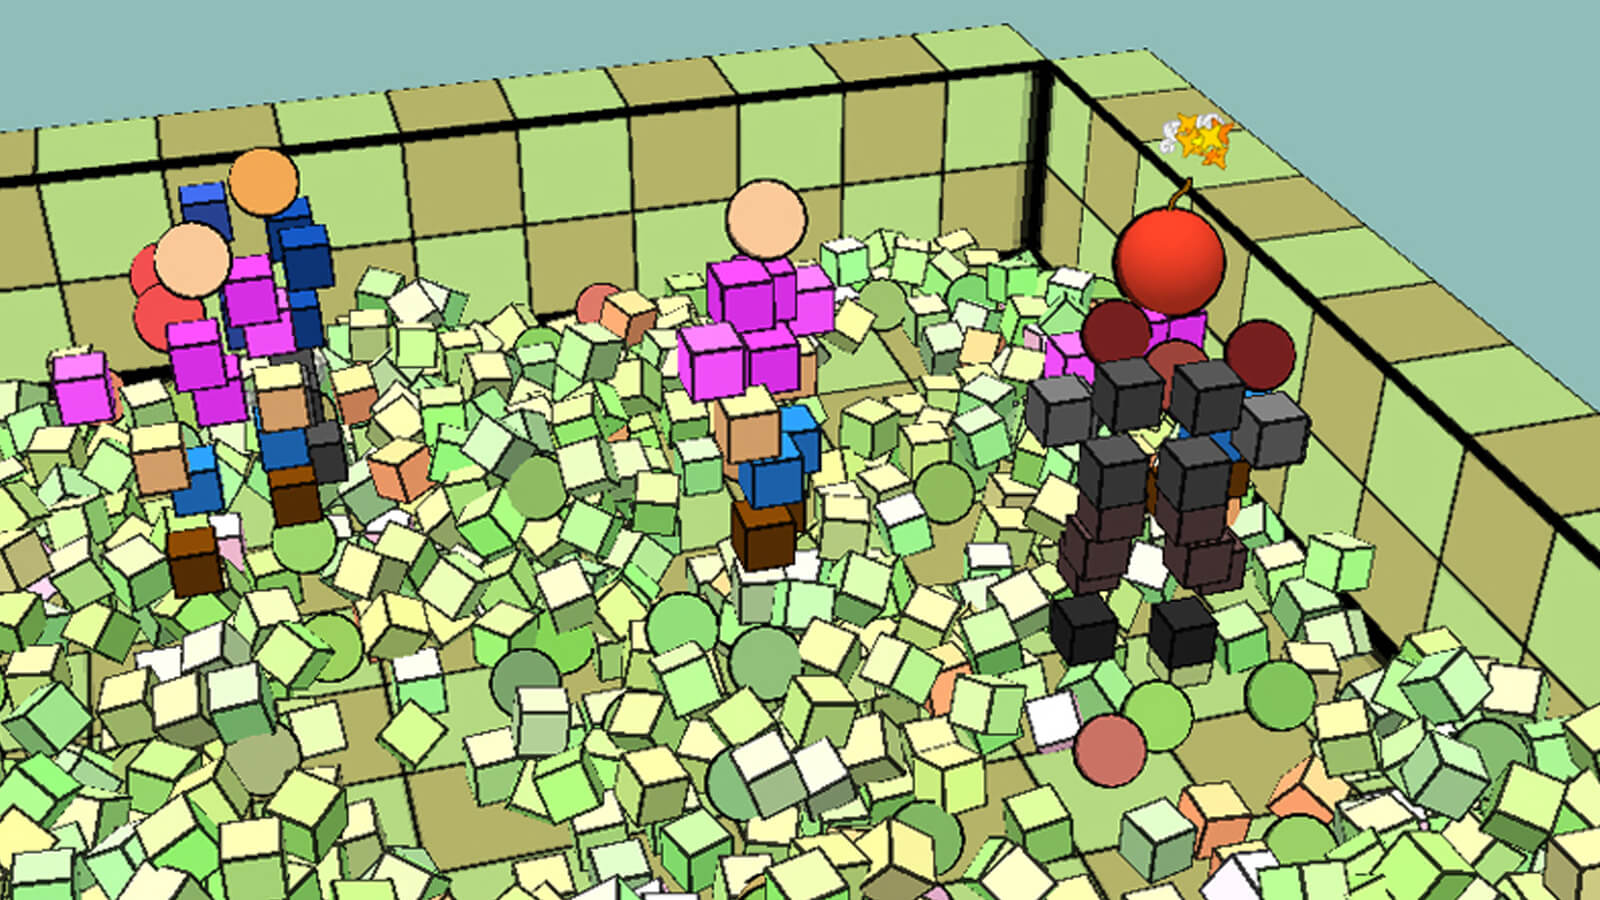 Three geometric people stand in a room littered with cubes.